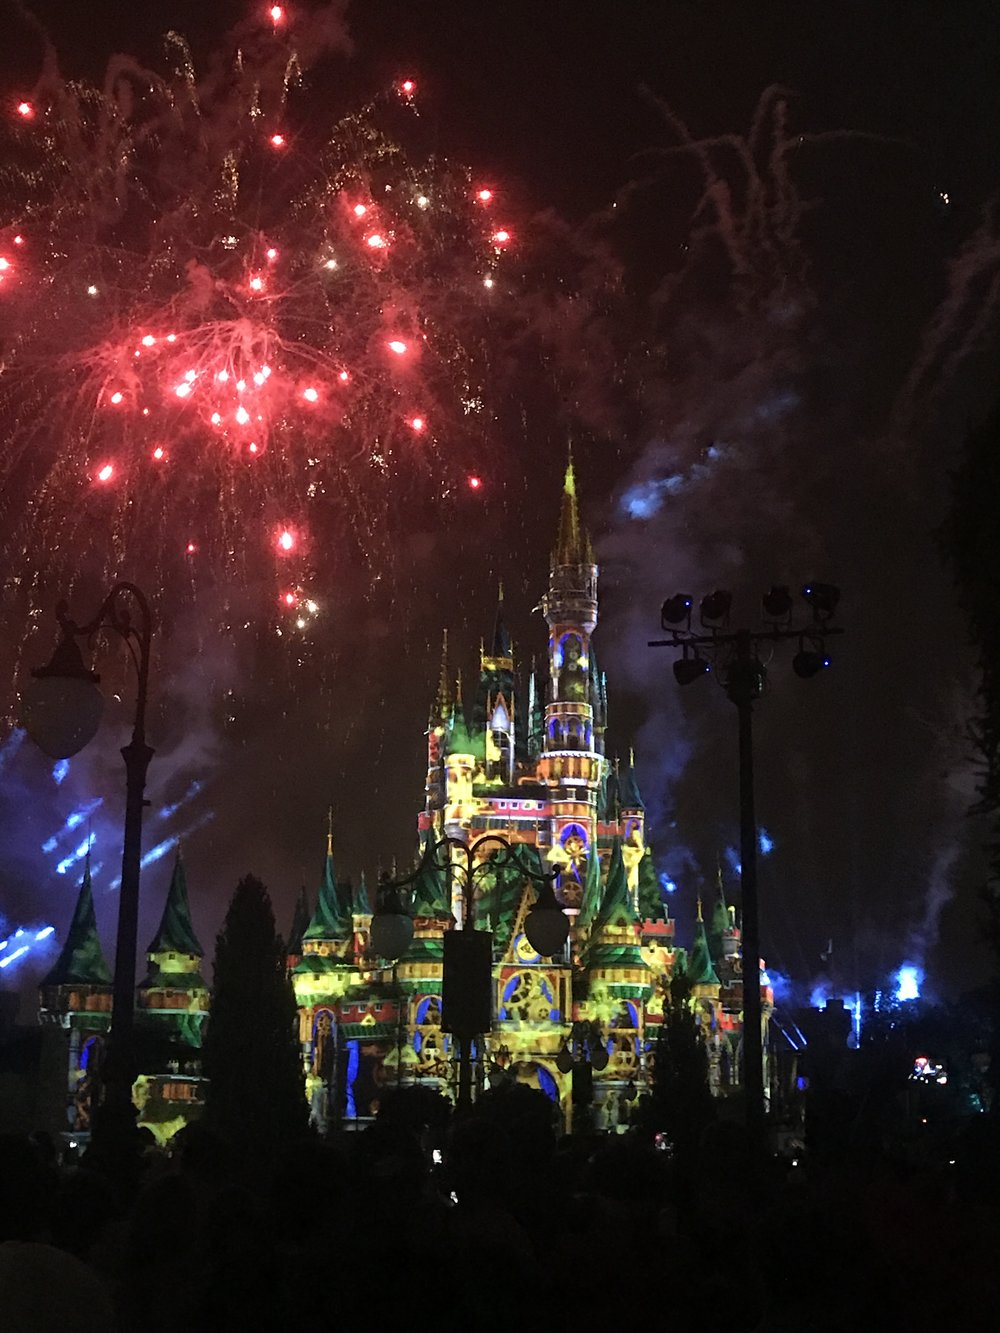 risa xu Disney world fireworks happily ever after